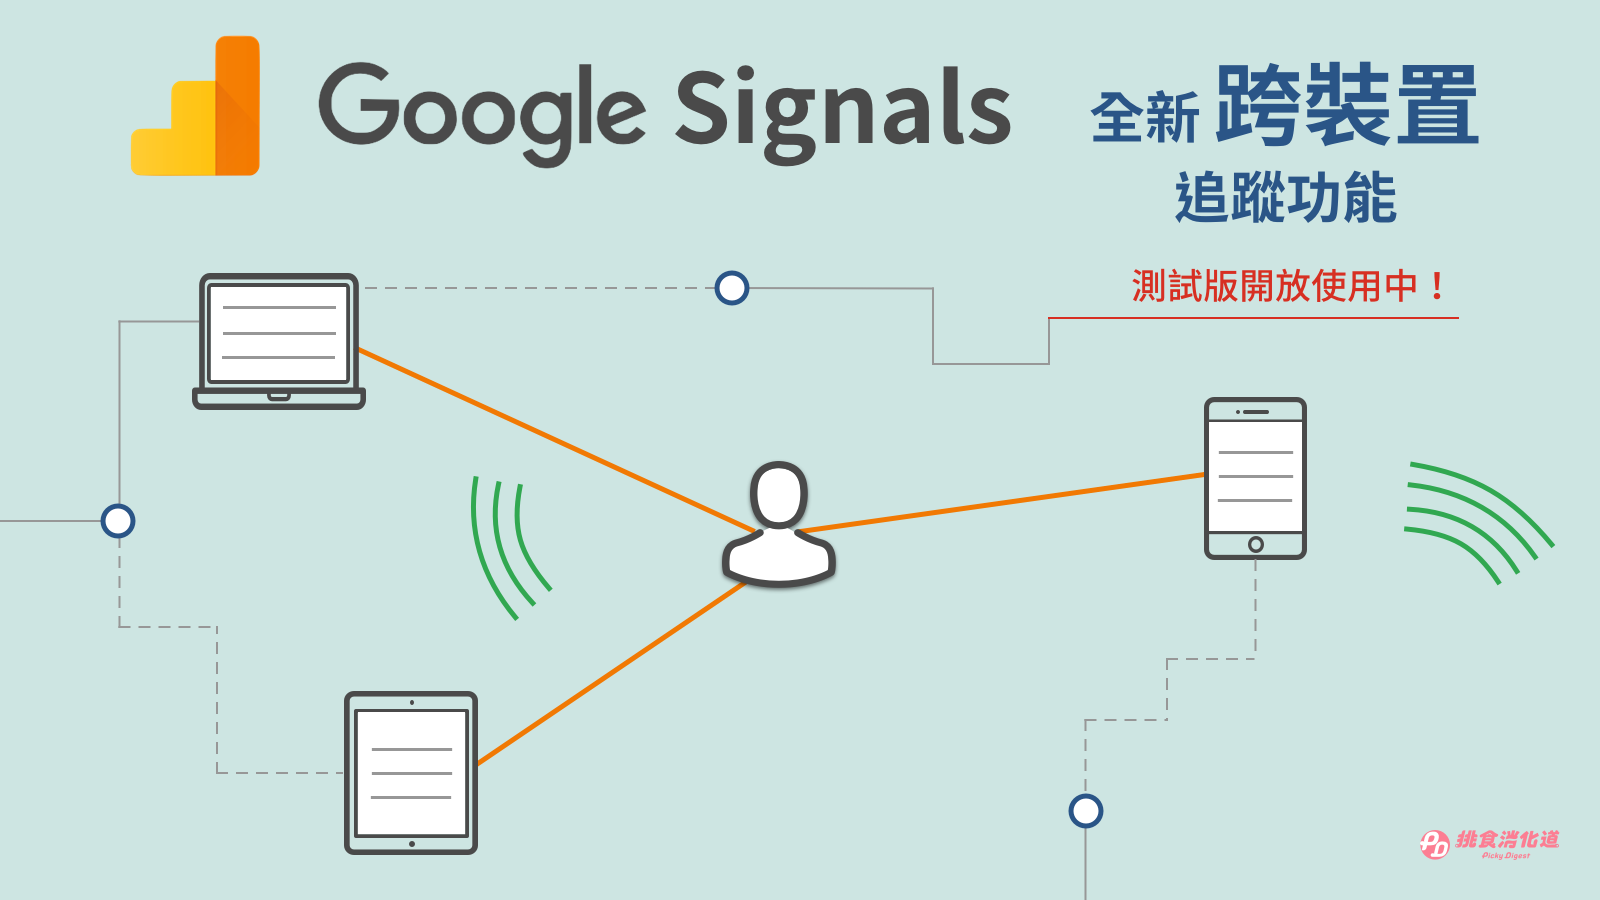 Google Signals Cover